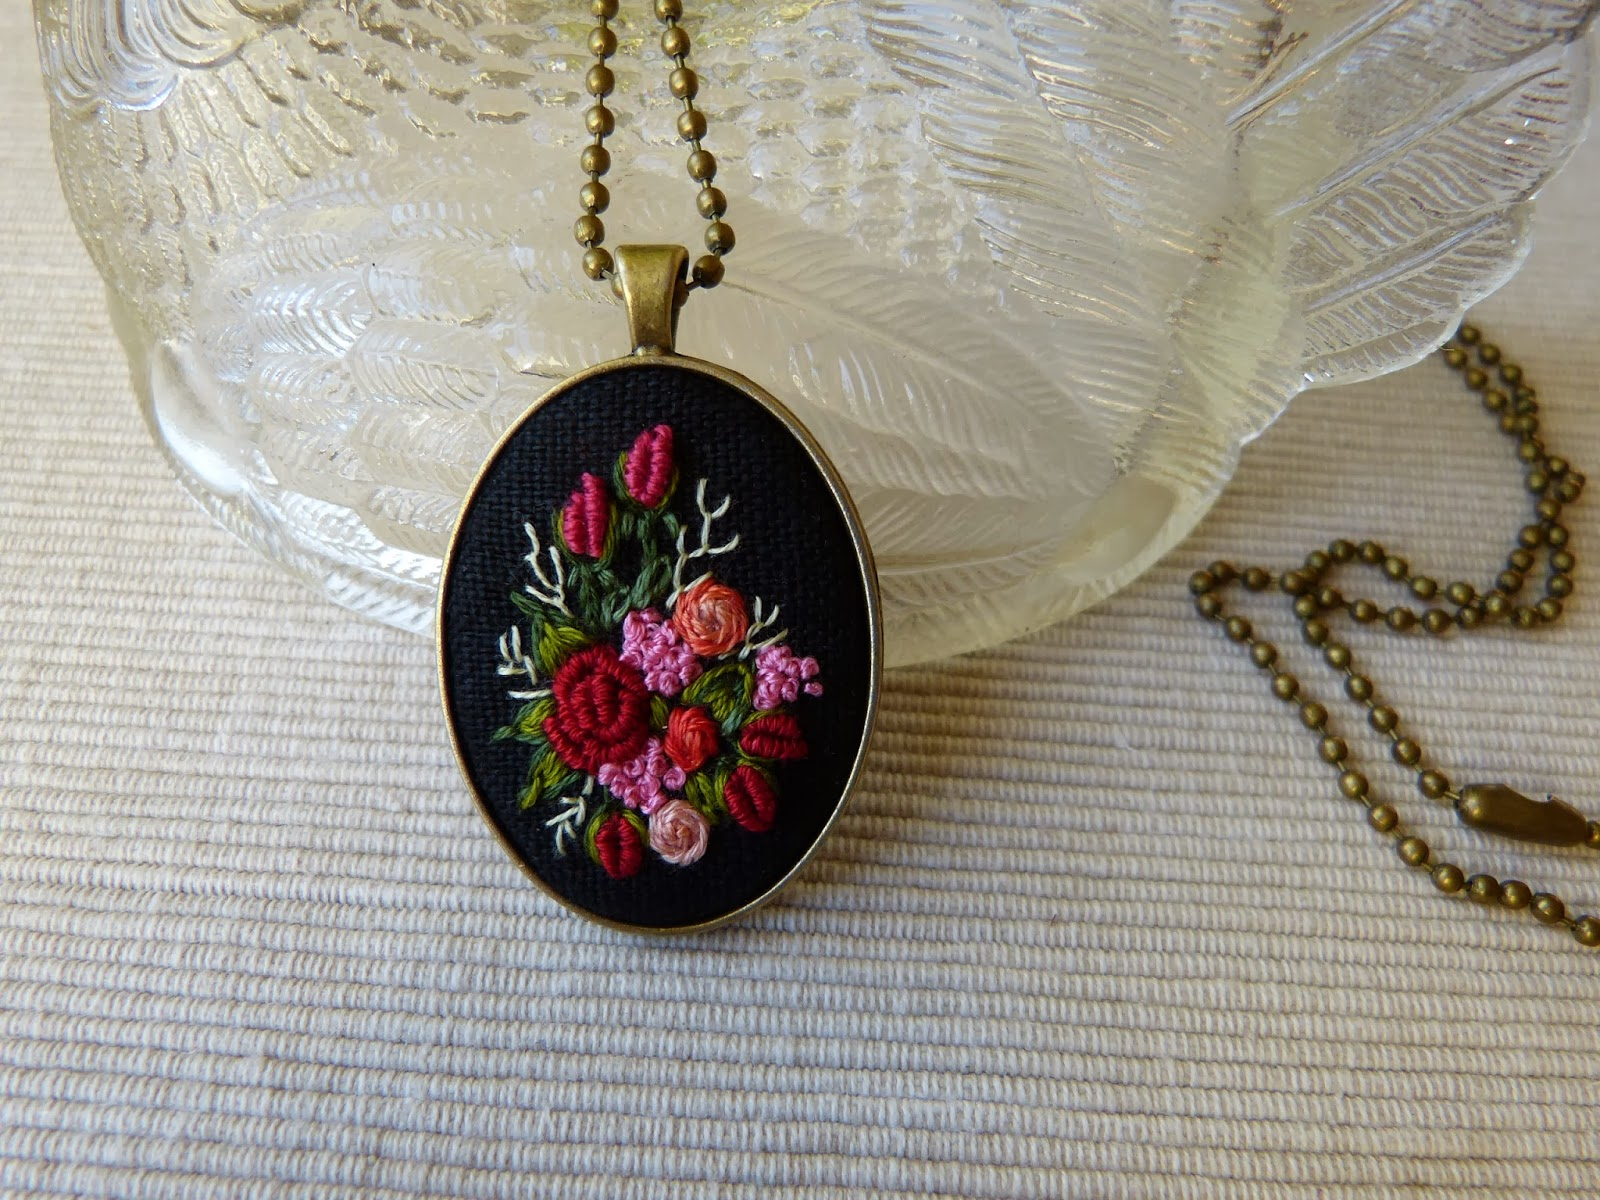 haft rococo, embroidered pendant, haftowane róże, haftowany naszyjnik, naszyjnik z haftem, embroidered jewerly, naszyjnik vintage, medalion z haftem, handmade jewerly, embroidered necklace